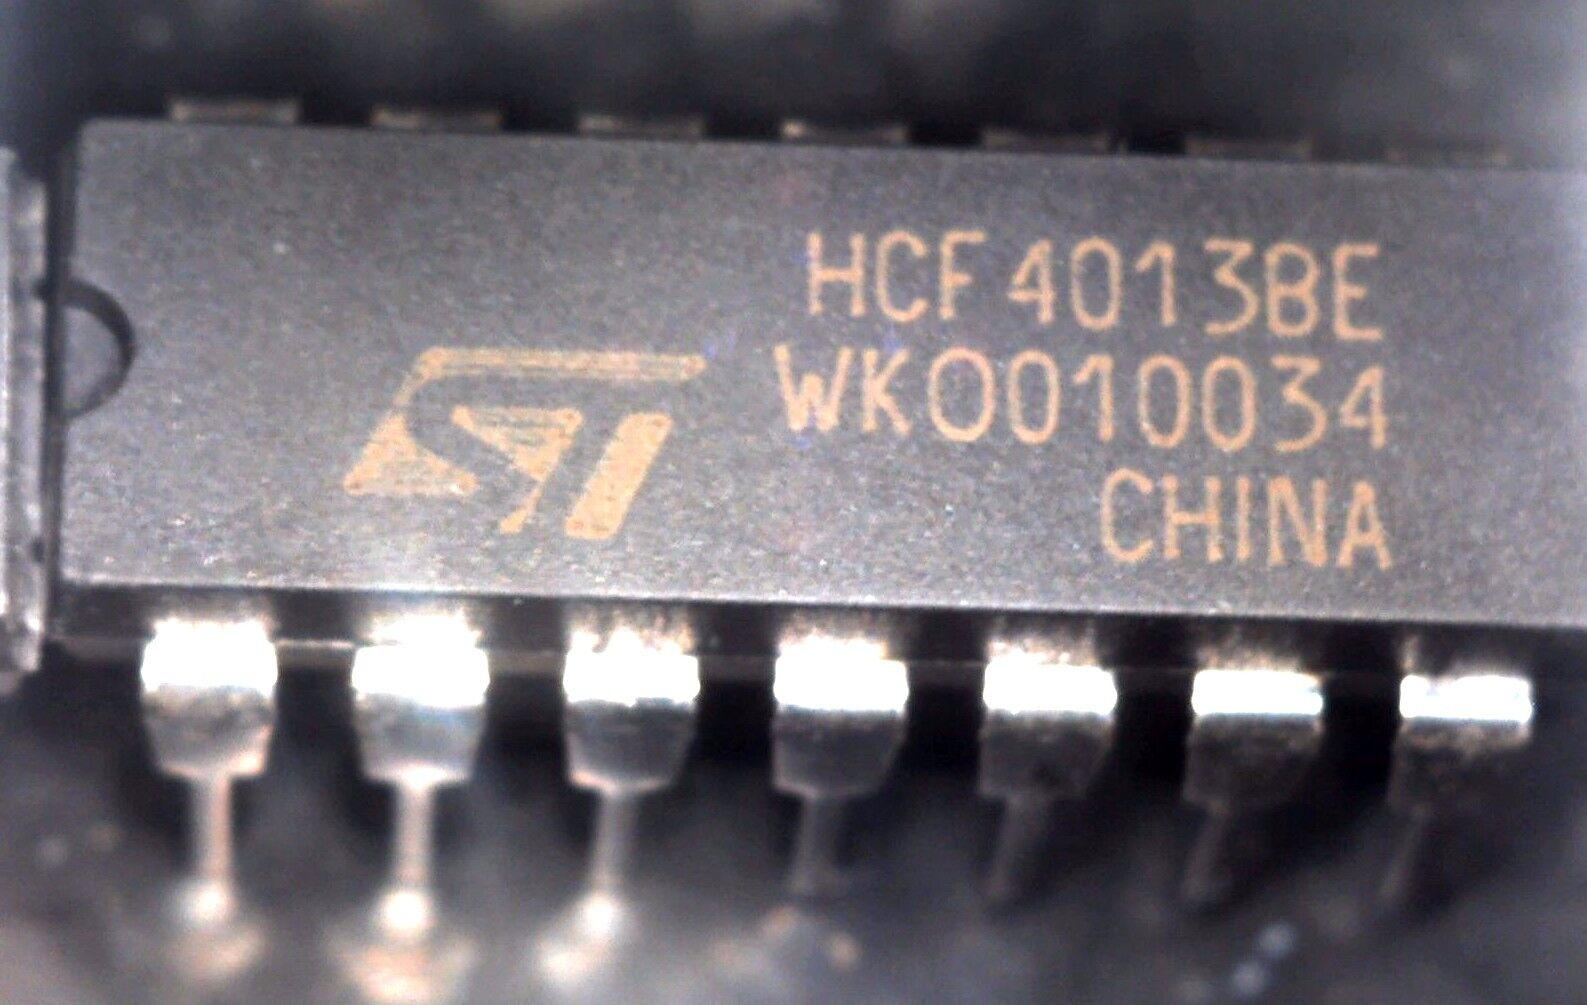 Hcf4013be Integrated Circuit Case Dip14 Make Stmicroelectronics Ebay Lm358 Dip8 Norton Secured Powered By Verisign